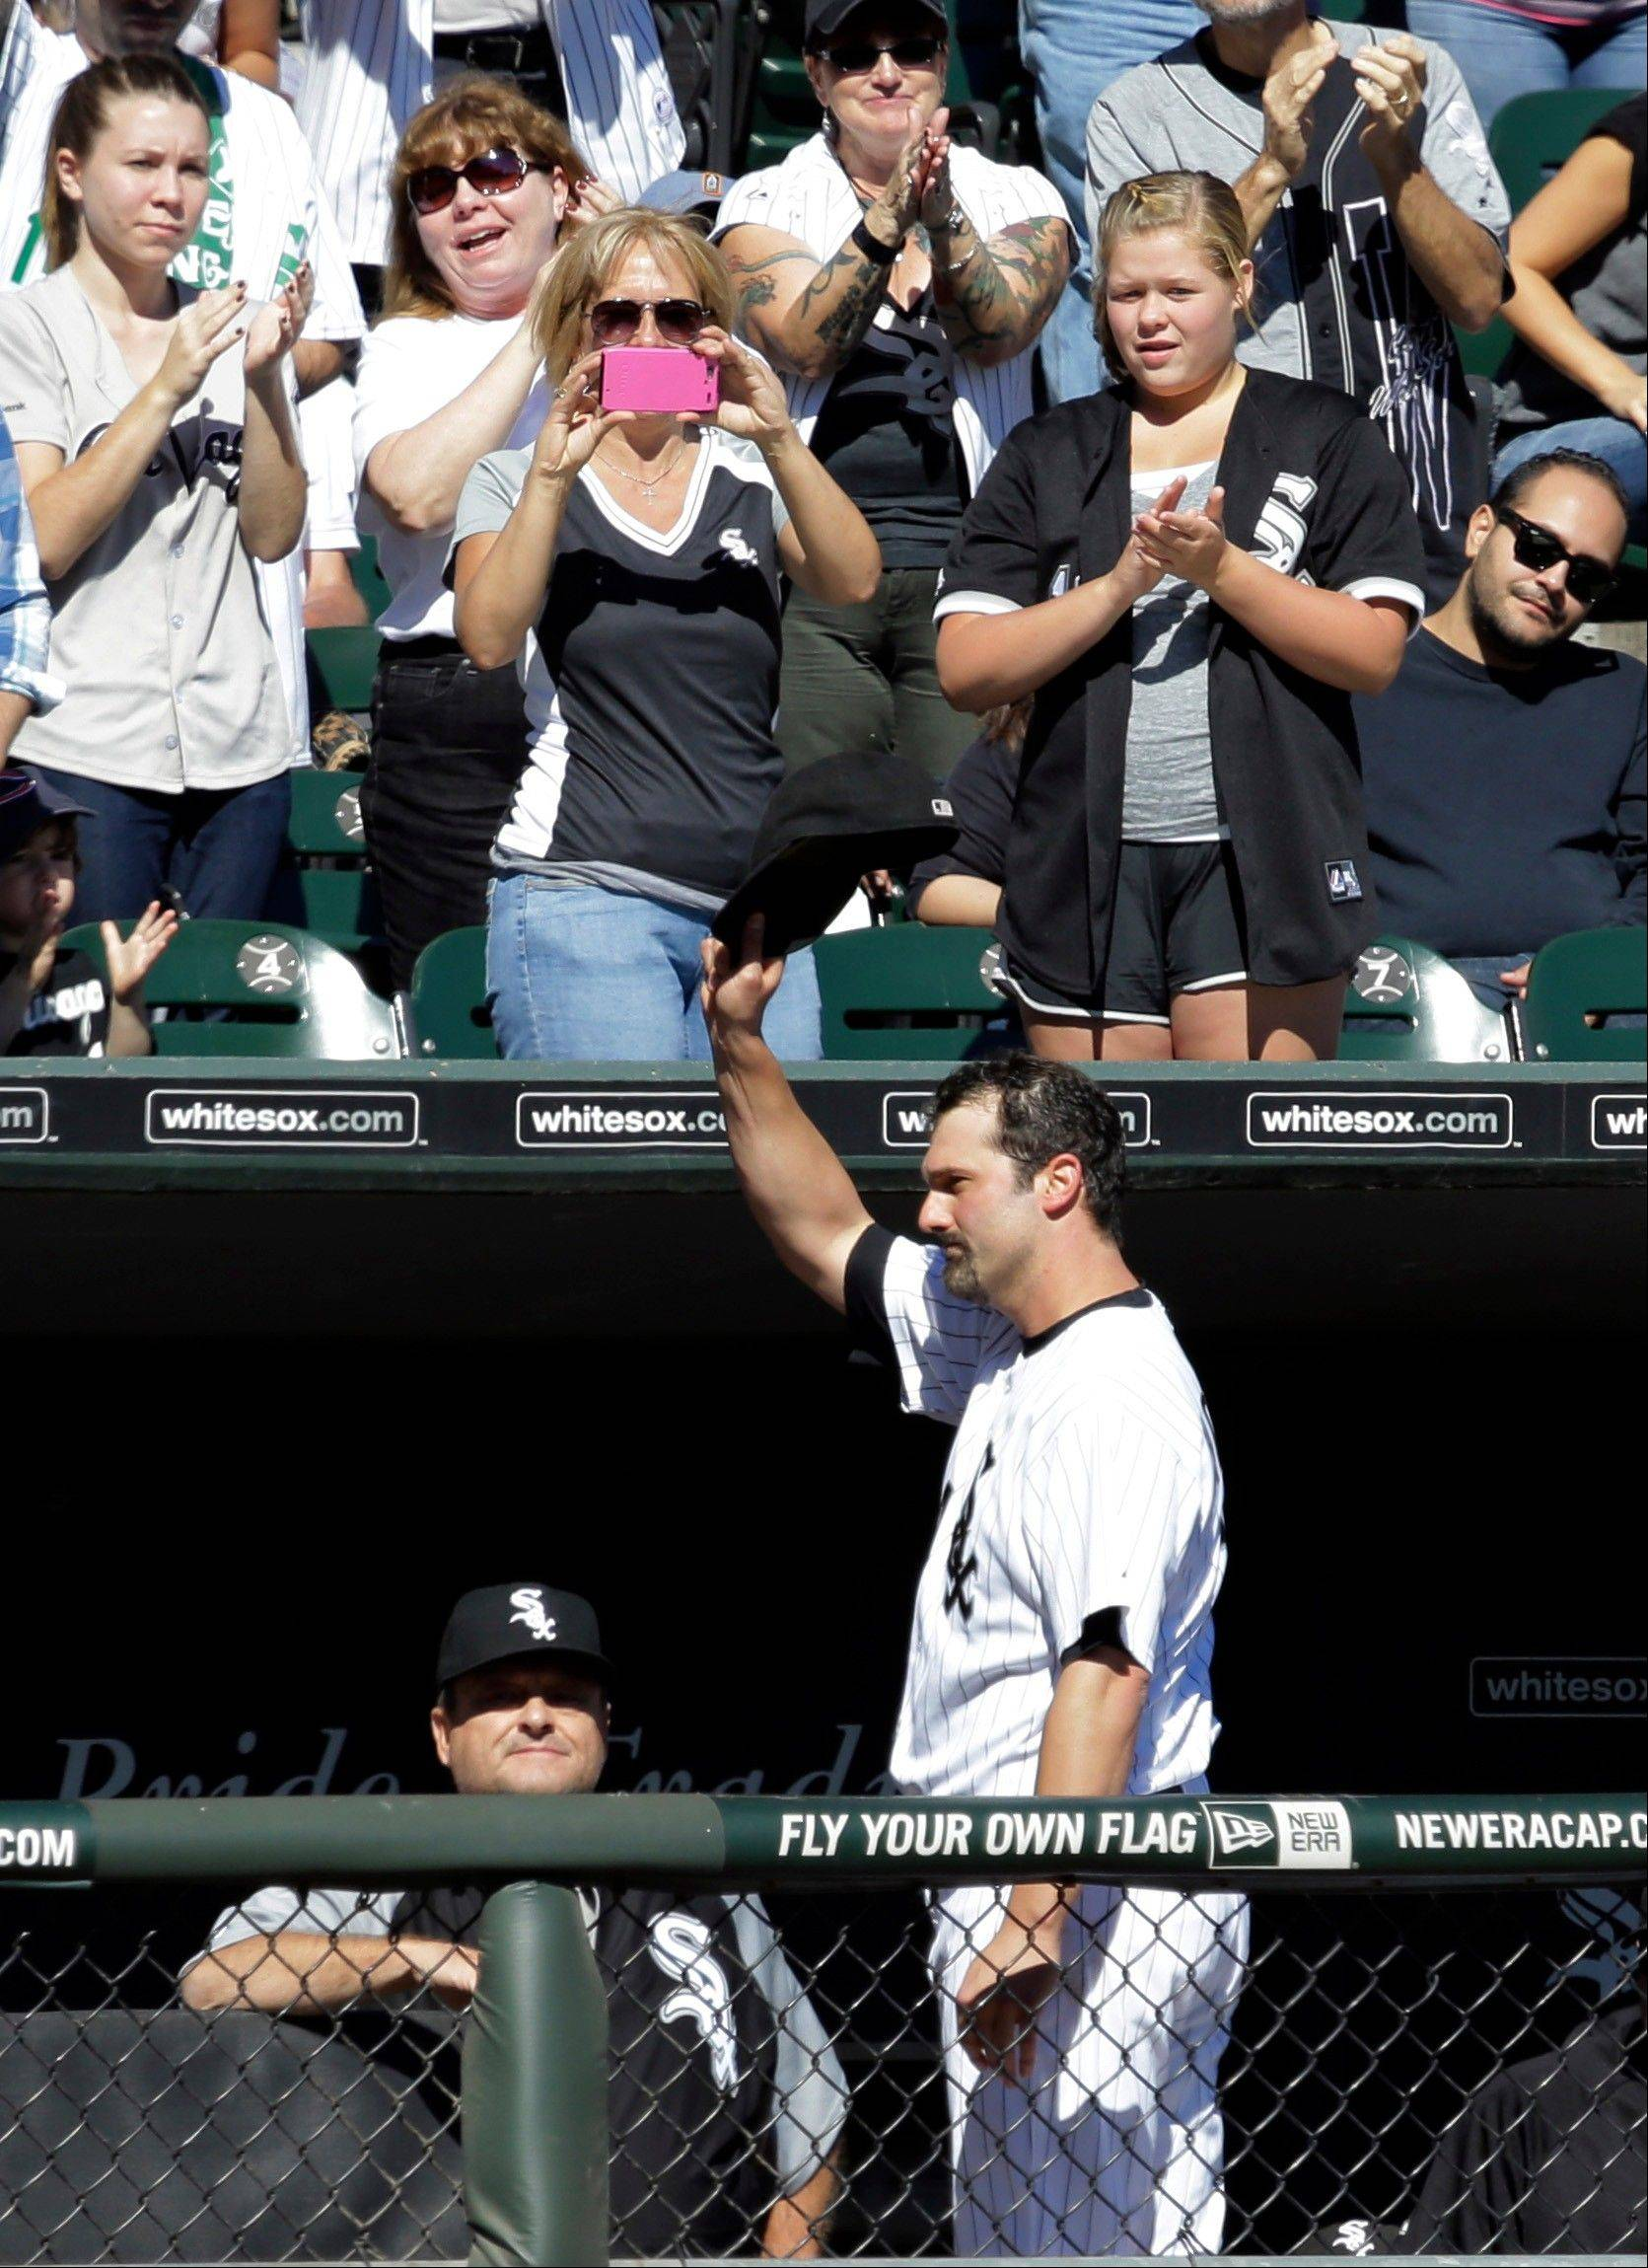 White Sox first baseman Paul Konerko waves to fans after Conor Gillaspie replaced him during the second inning of a baseball game against the Kansas City Royals in Chicago, Sunday, Sept. 29, 2013.